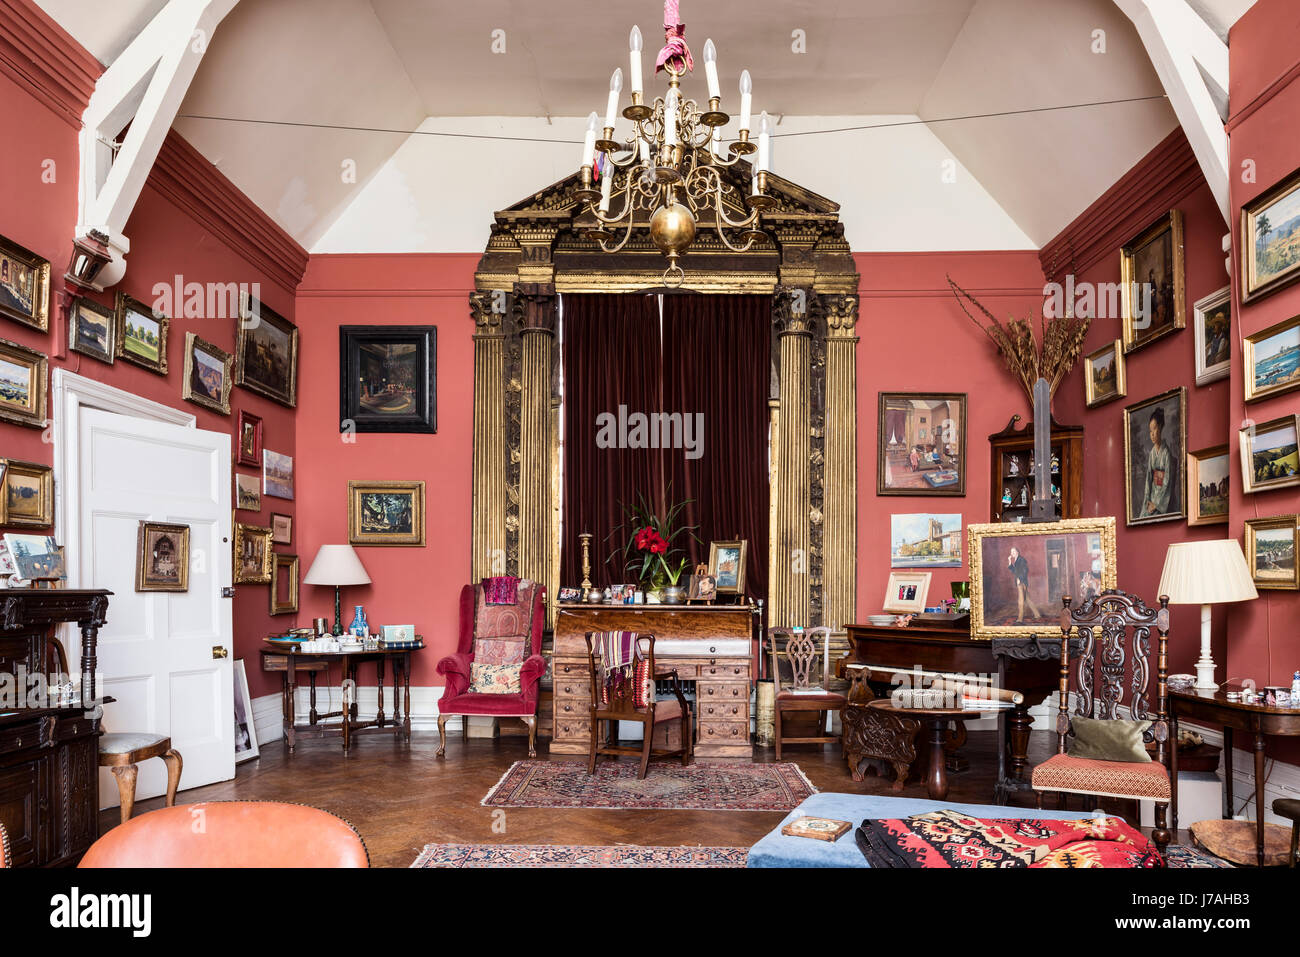 A large salvaged gilt wooden 15th century overdoor and pediment around velvet curtain window in drawing room painted - Stock Image